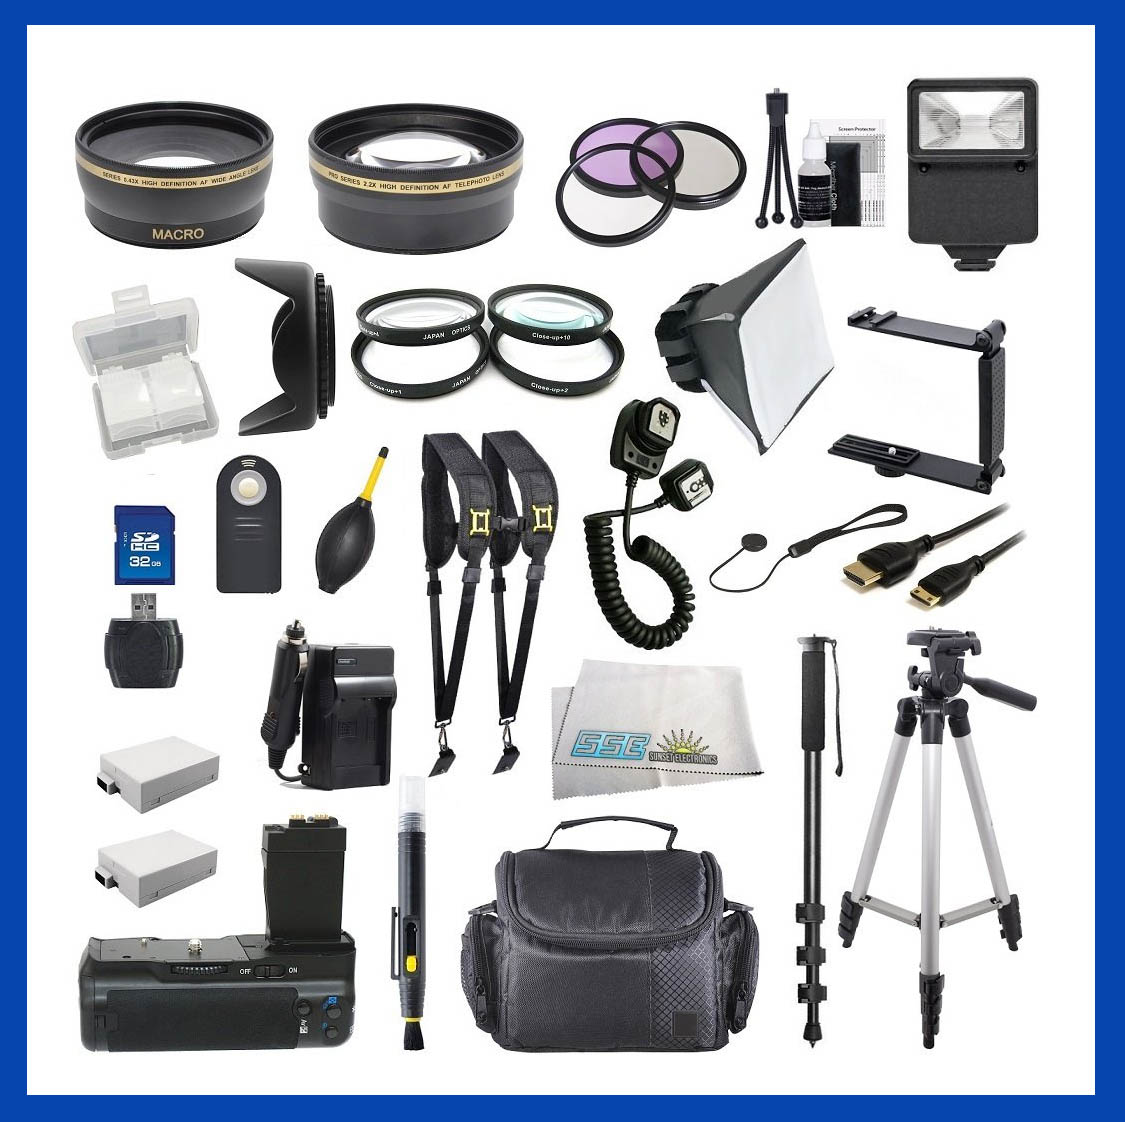 Here is the most complicated Canon Rebel accessory bundle that I found